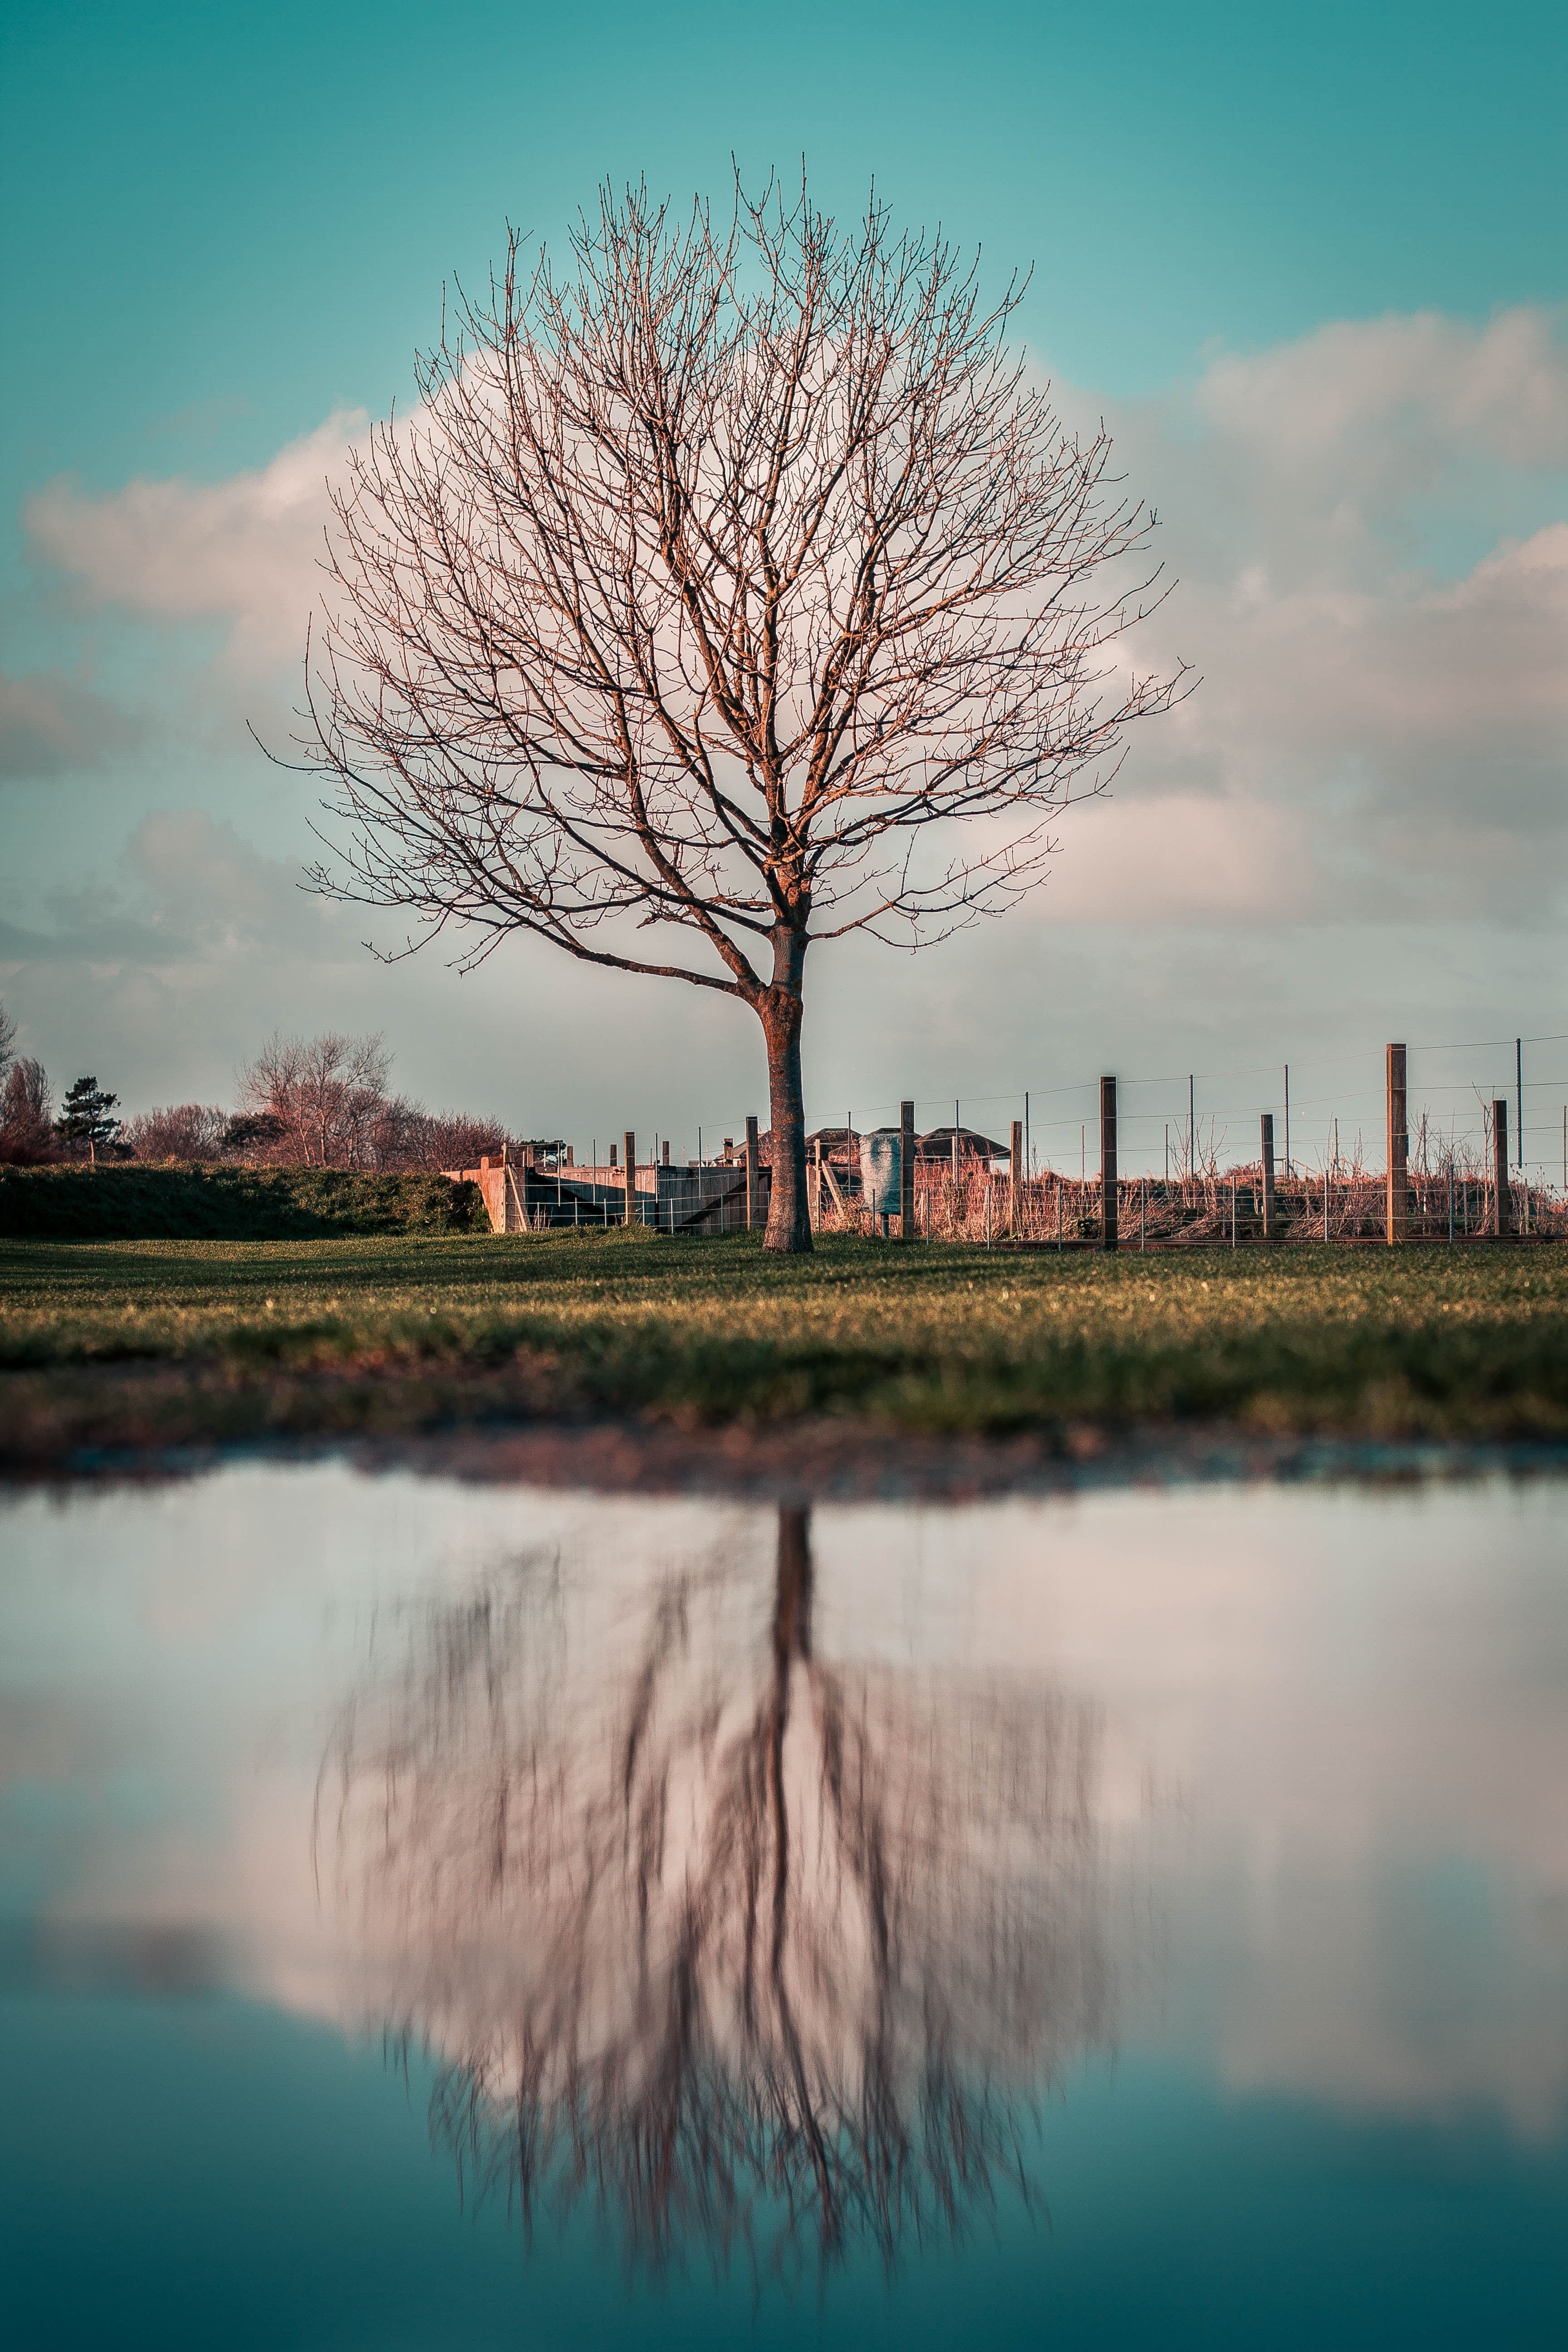 bare tree in pasture near body of water under cloudy sky